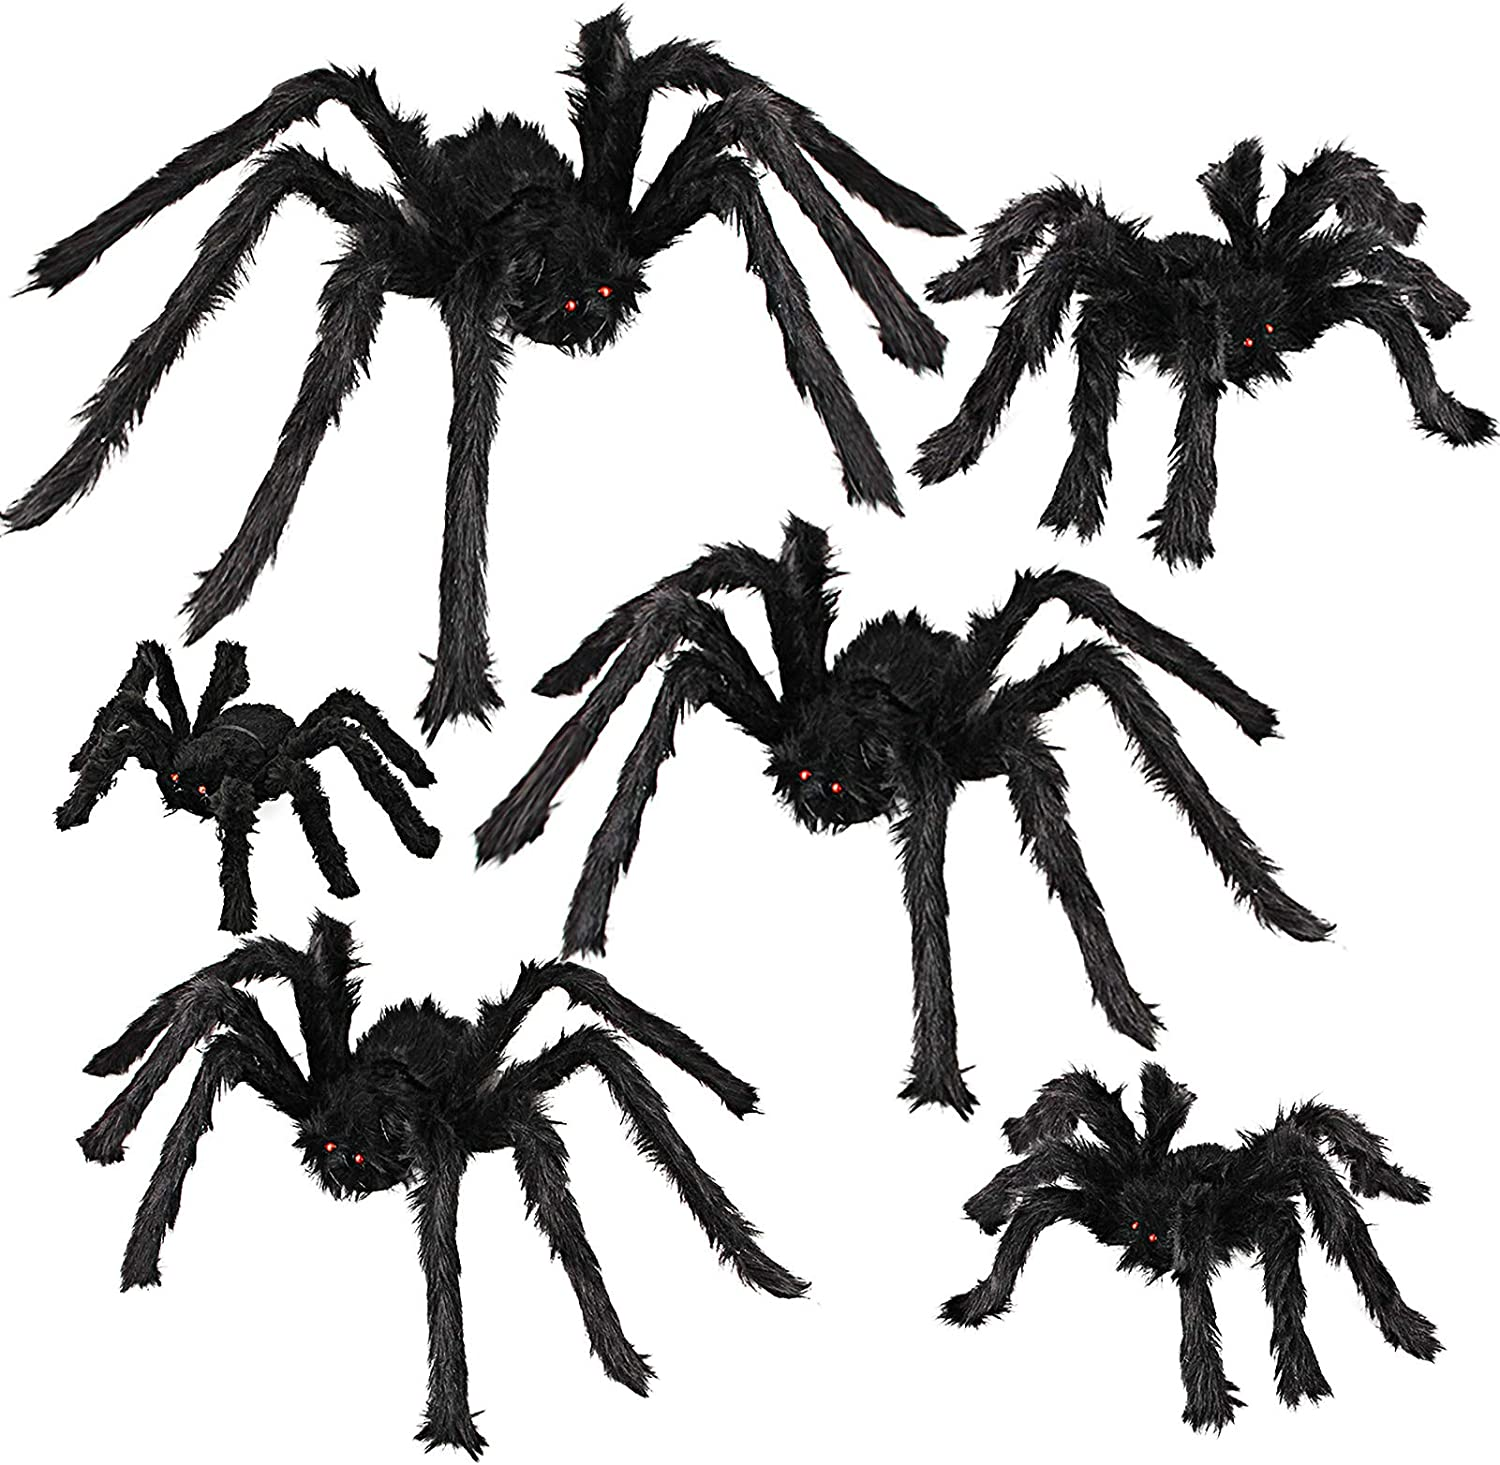 Dreampark Halloween Spider Decorations, 6 Pcs Realistic Hairy Spiders Set, Scary Spider Props for Indoor, Outdoor and Yard Creepy Decor (6 Different Sizes)